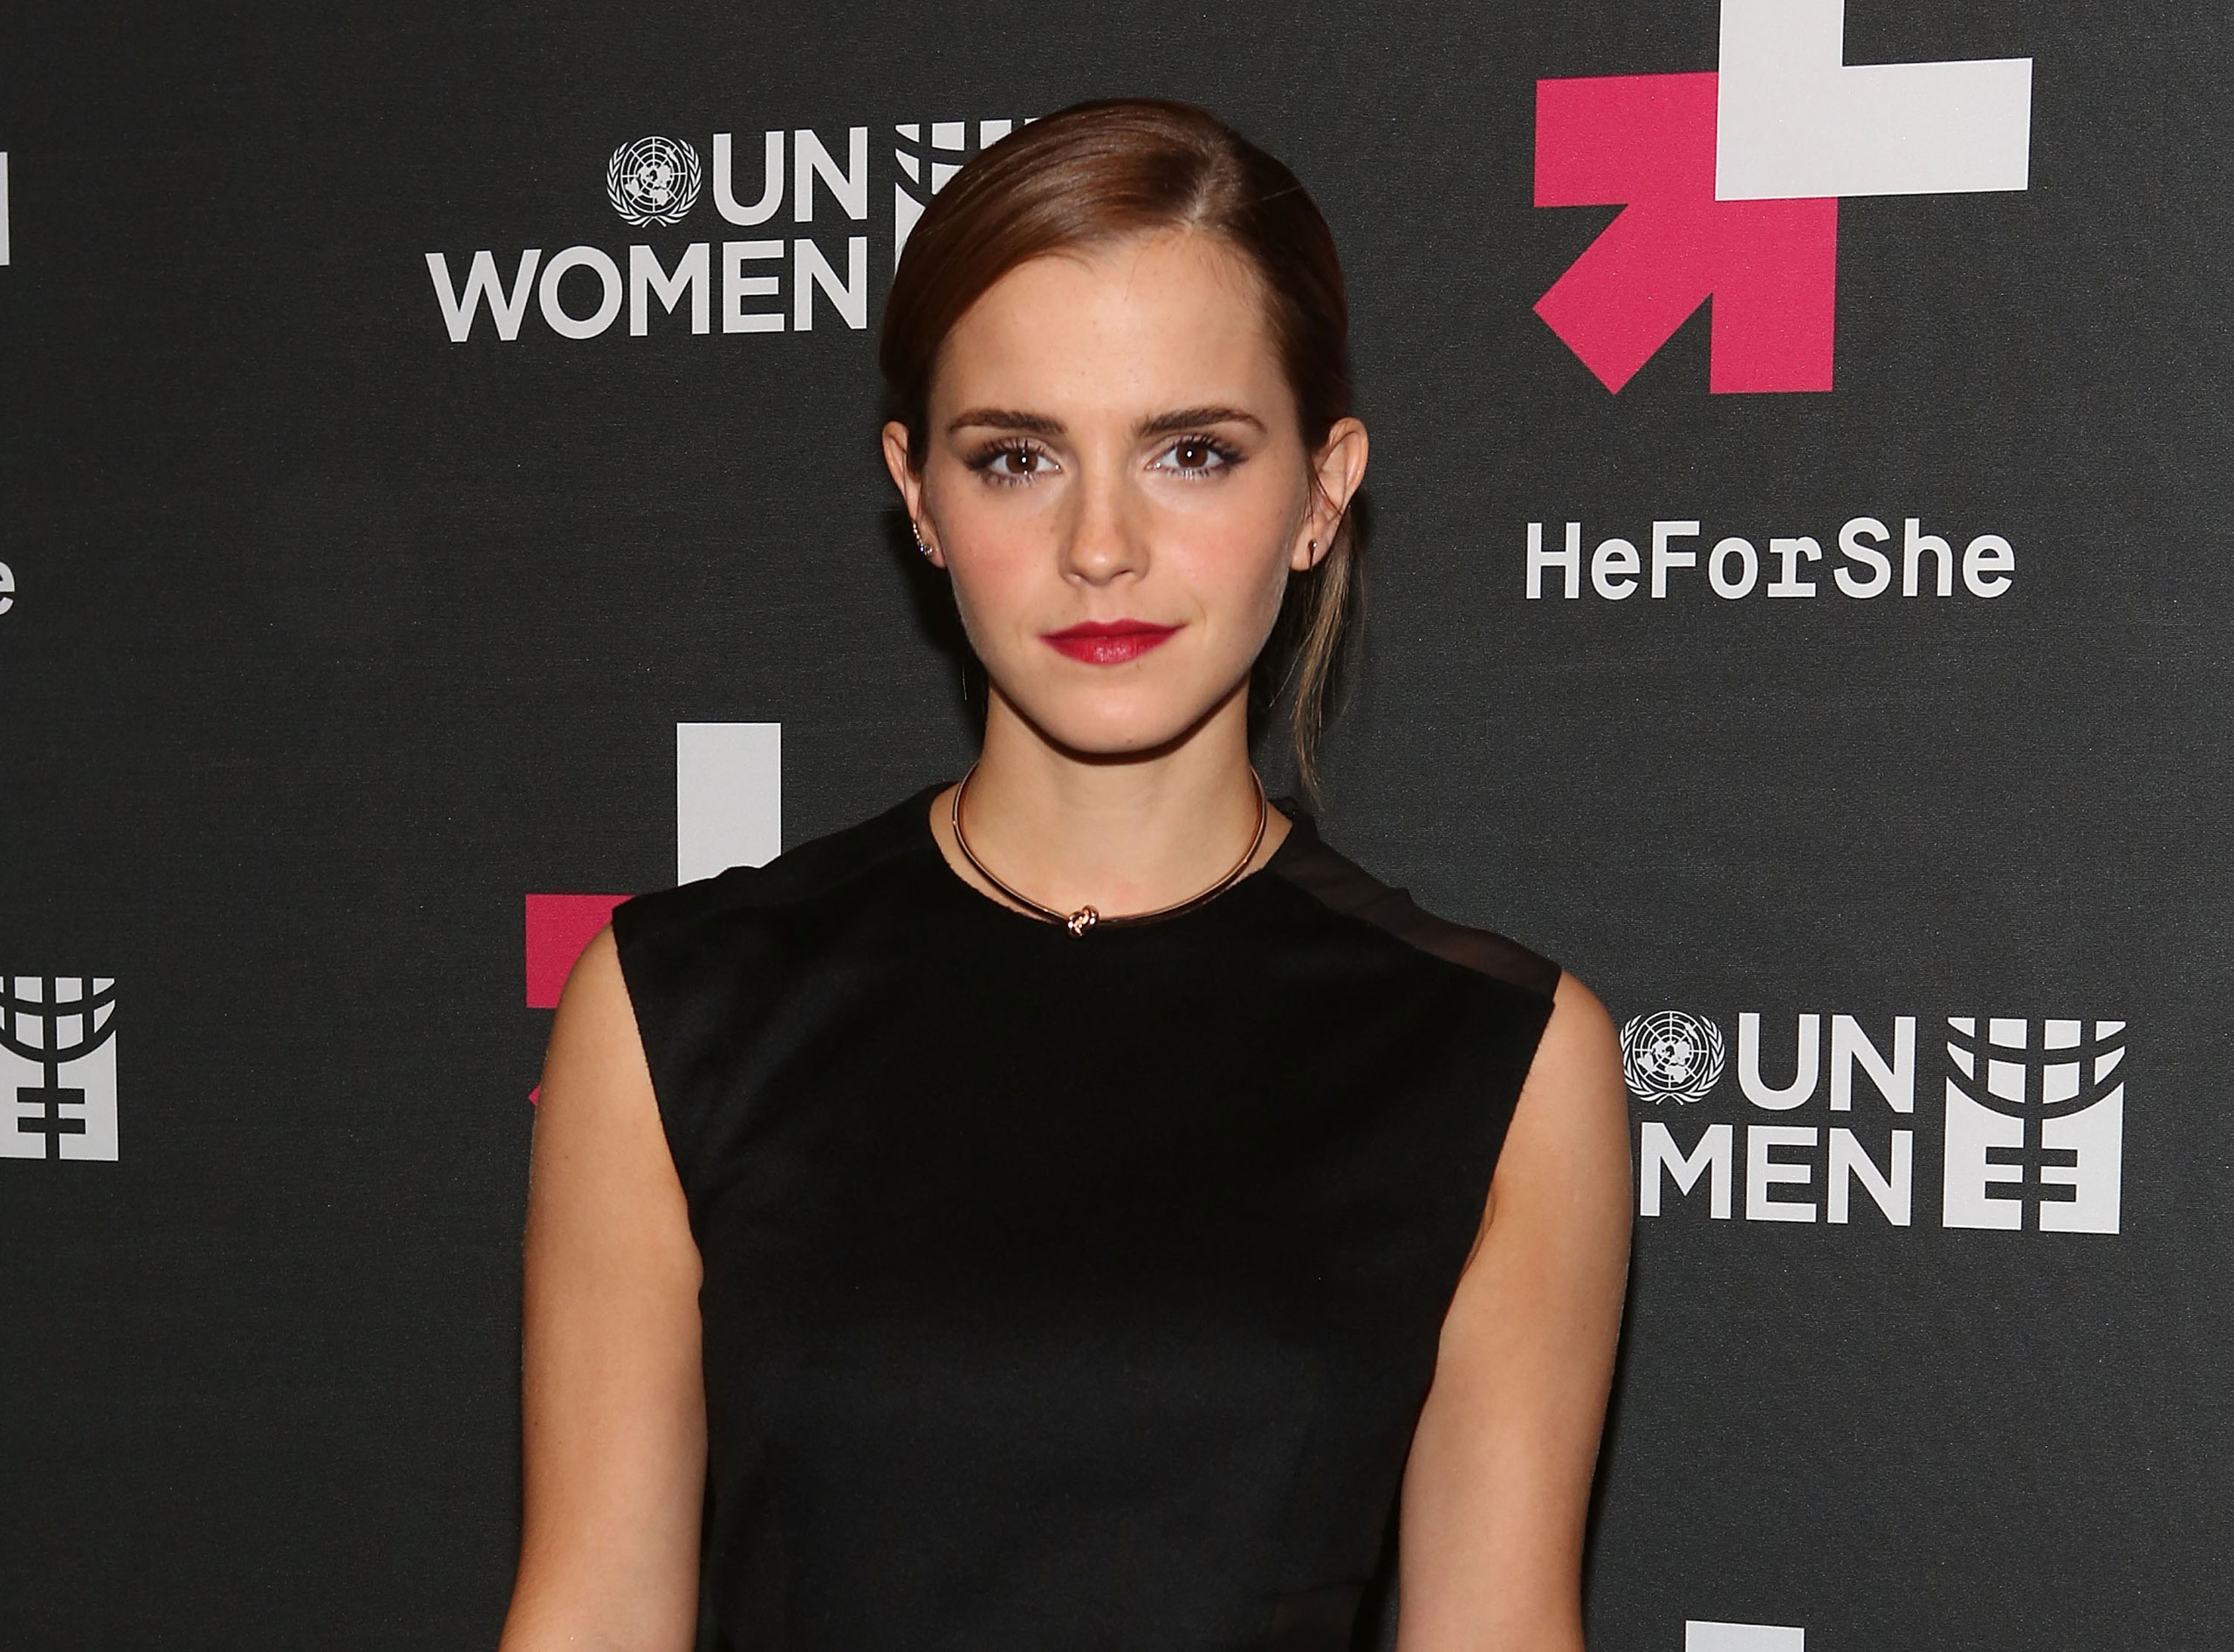 Actress and U.N. Women Goodwill Ambassador Emma Watson at the UN Women's  HeForShe  VIP After Party in New York City, Sept. 20, 2014. The actress held a live Q&A session via Facebook on International Women's Day.